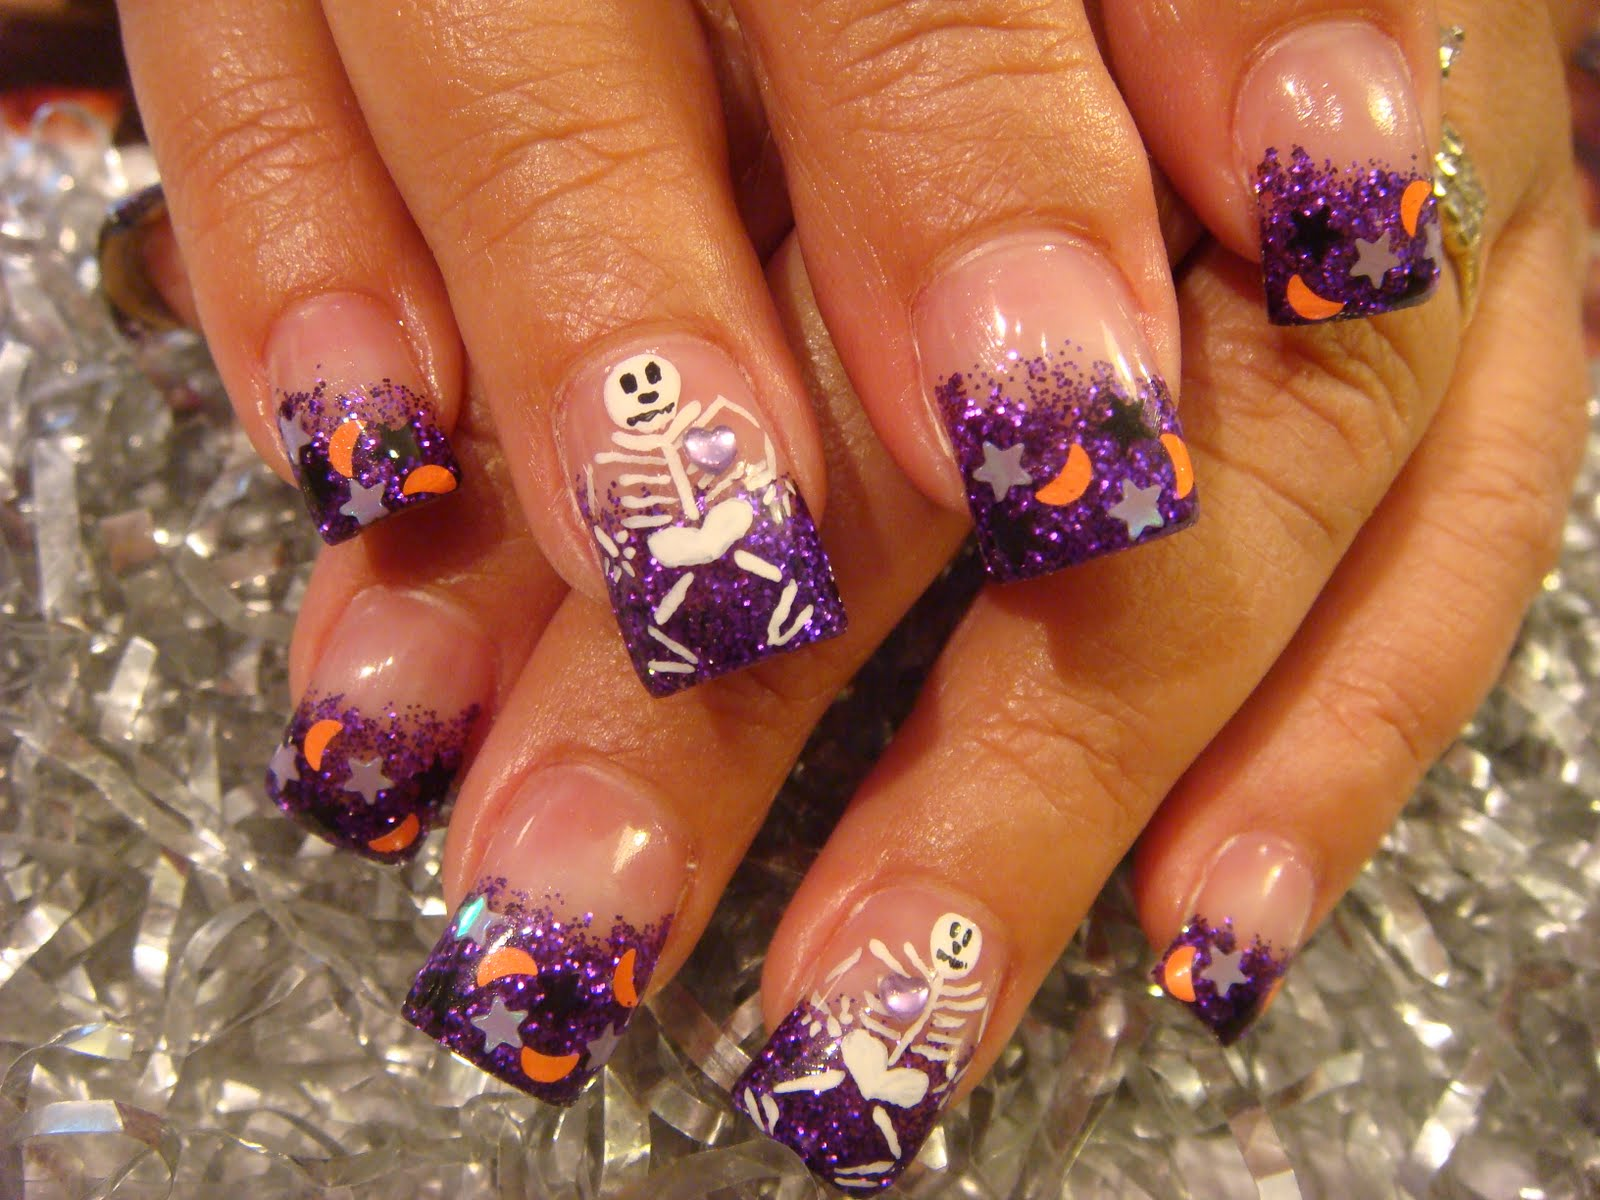 HALLOWEEN Young nails acrylic | Nails Acrylic